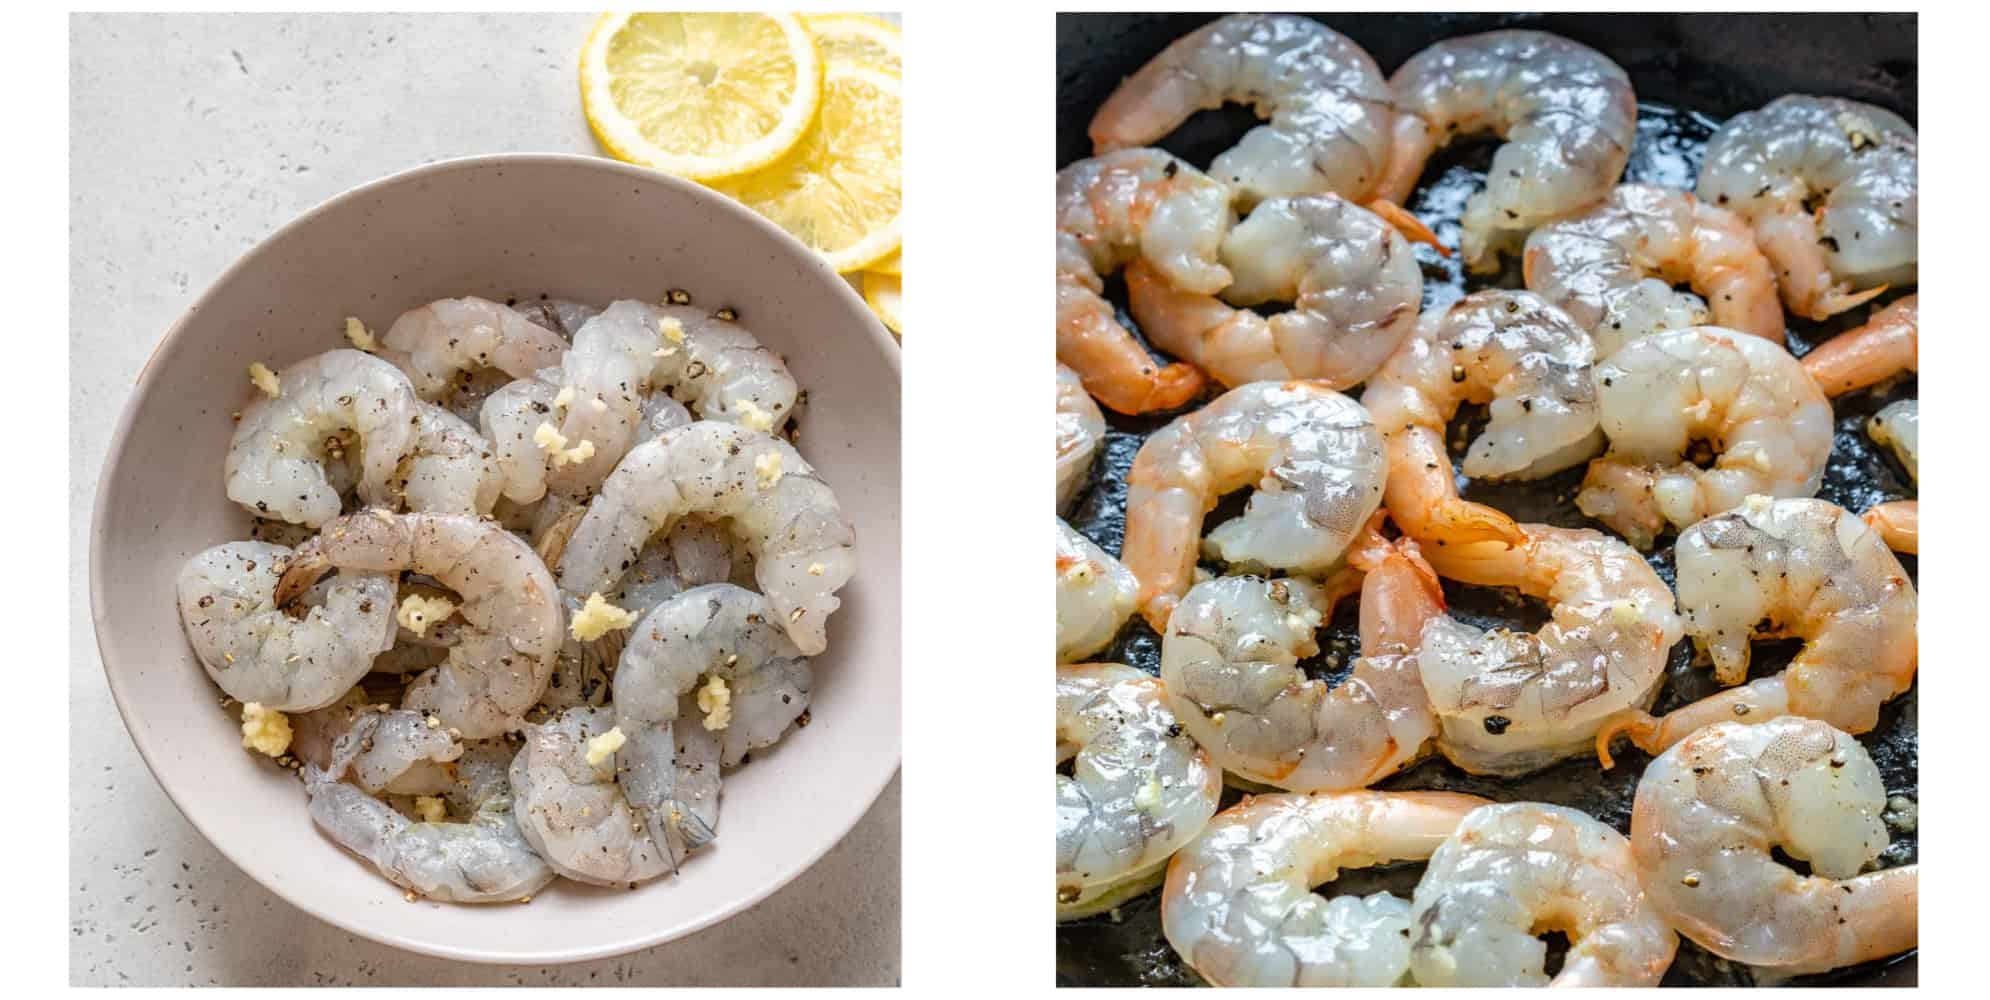 collage of raw shrimp on the left and raw shrimp on skillet